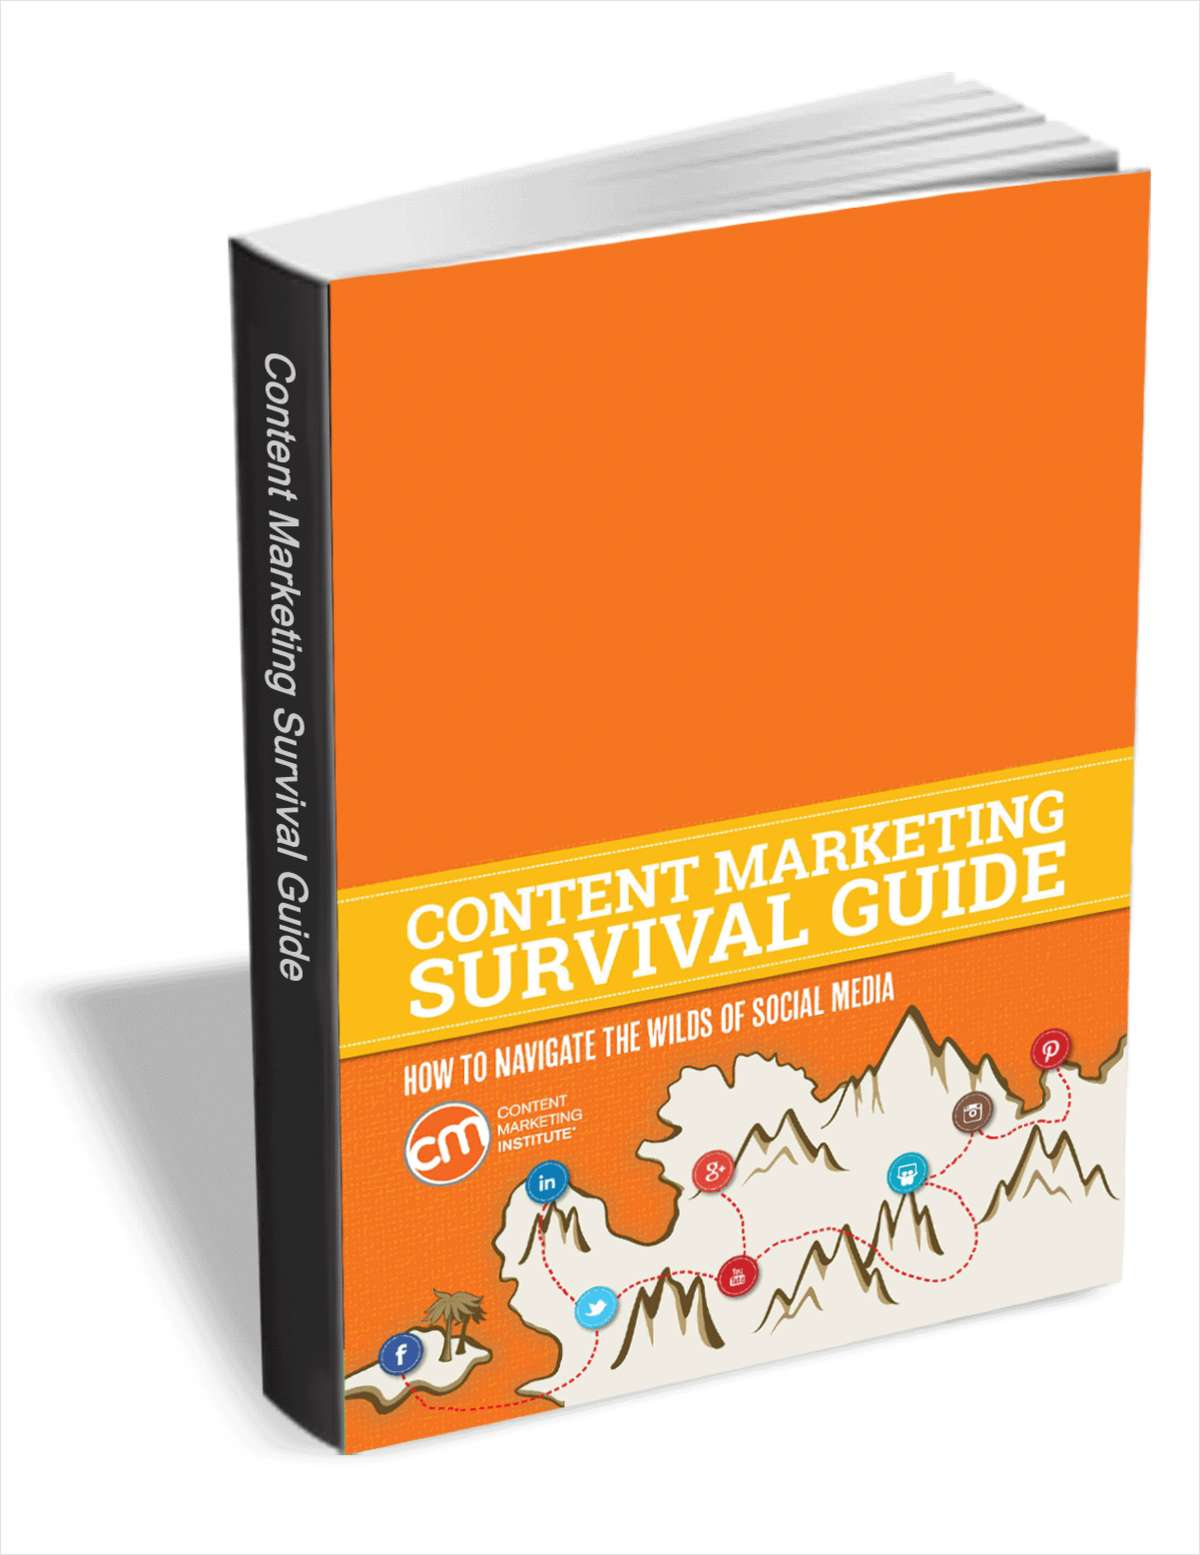 The Content Marketing Survival Guide: How to Navigate the Wilds of Social Media